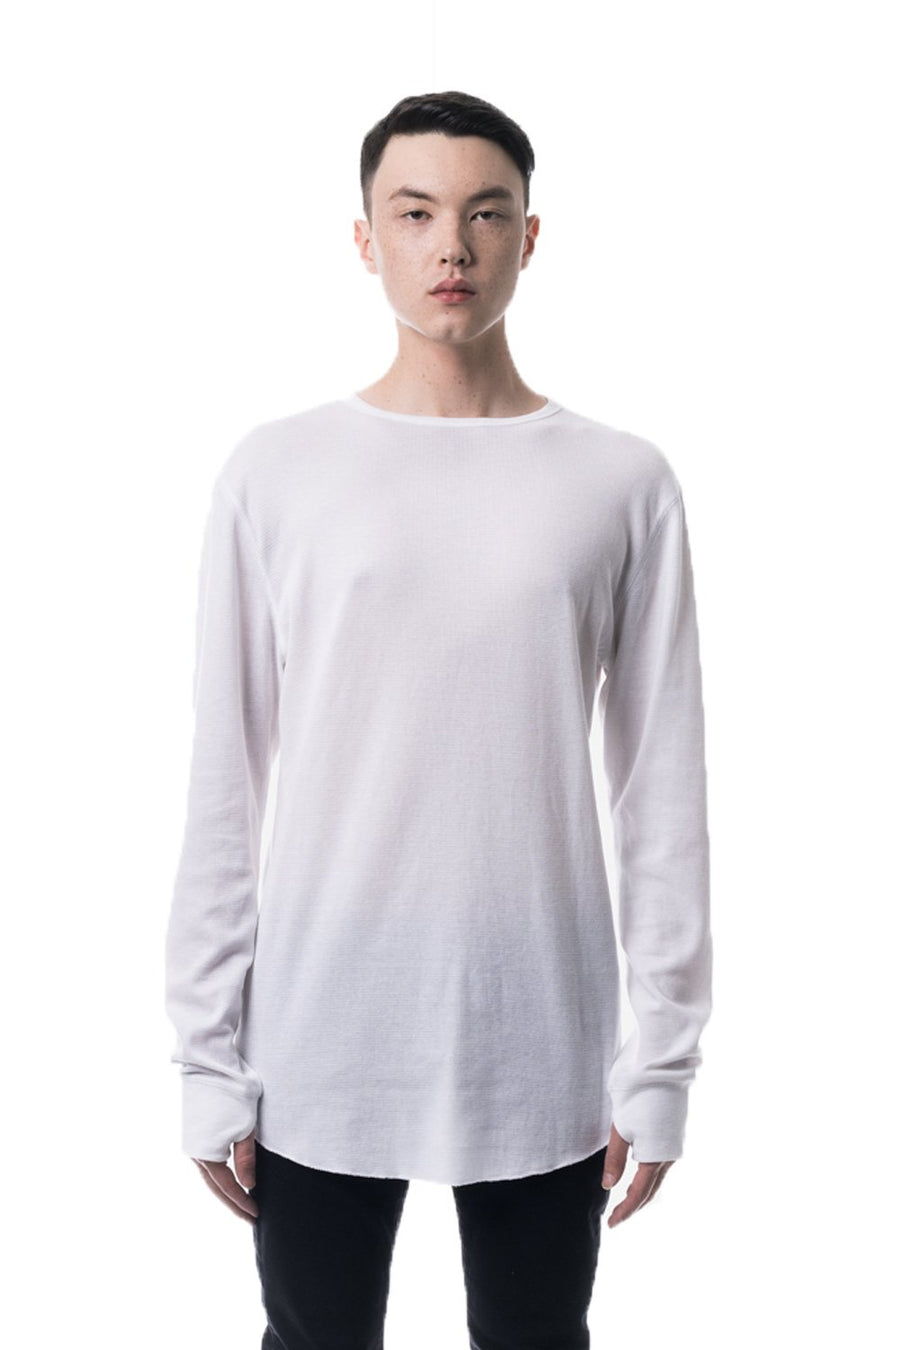 kuwalla tee thermal underscoop long sleeve white